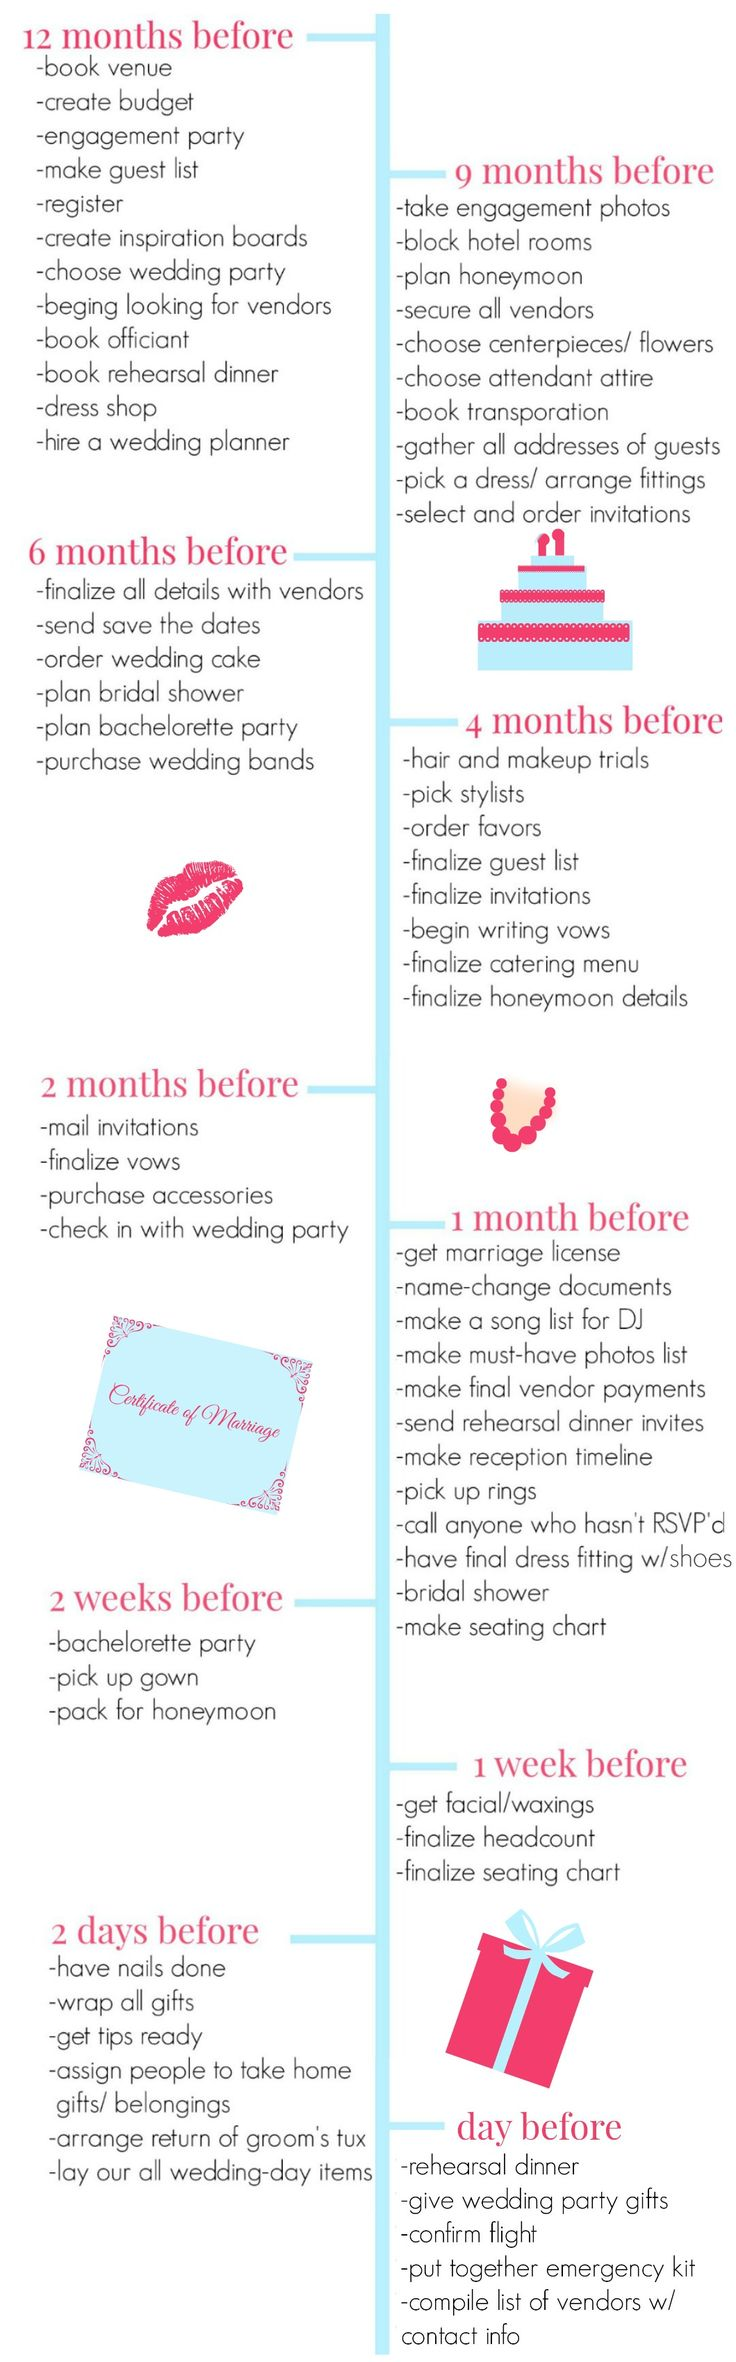 Planning timeline! This one has when to have engagement party and when to take engagement pictures.